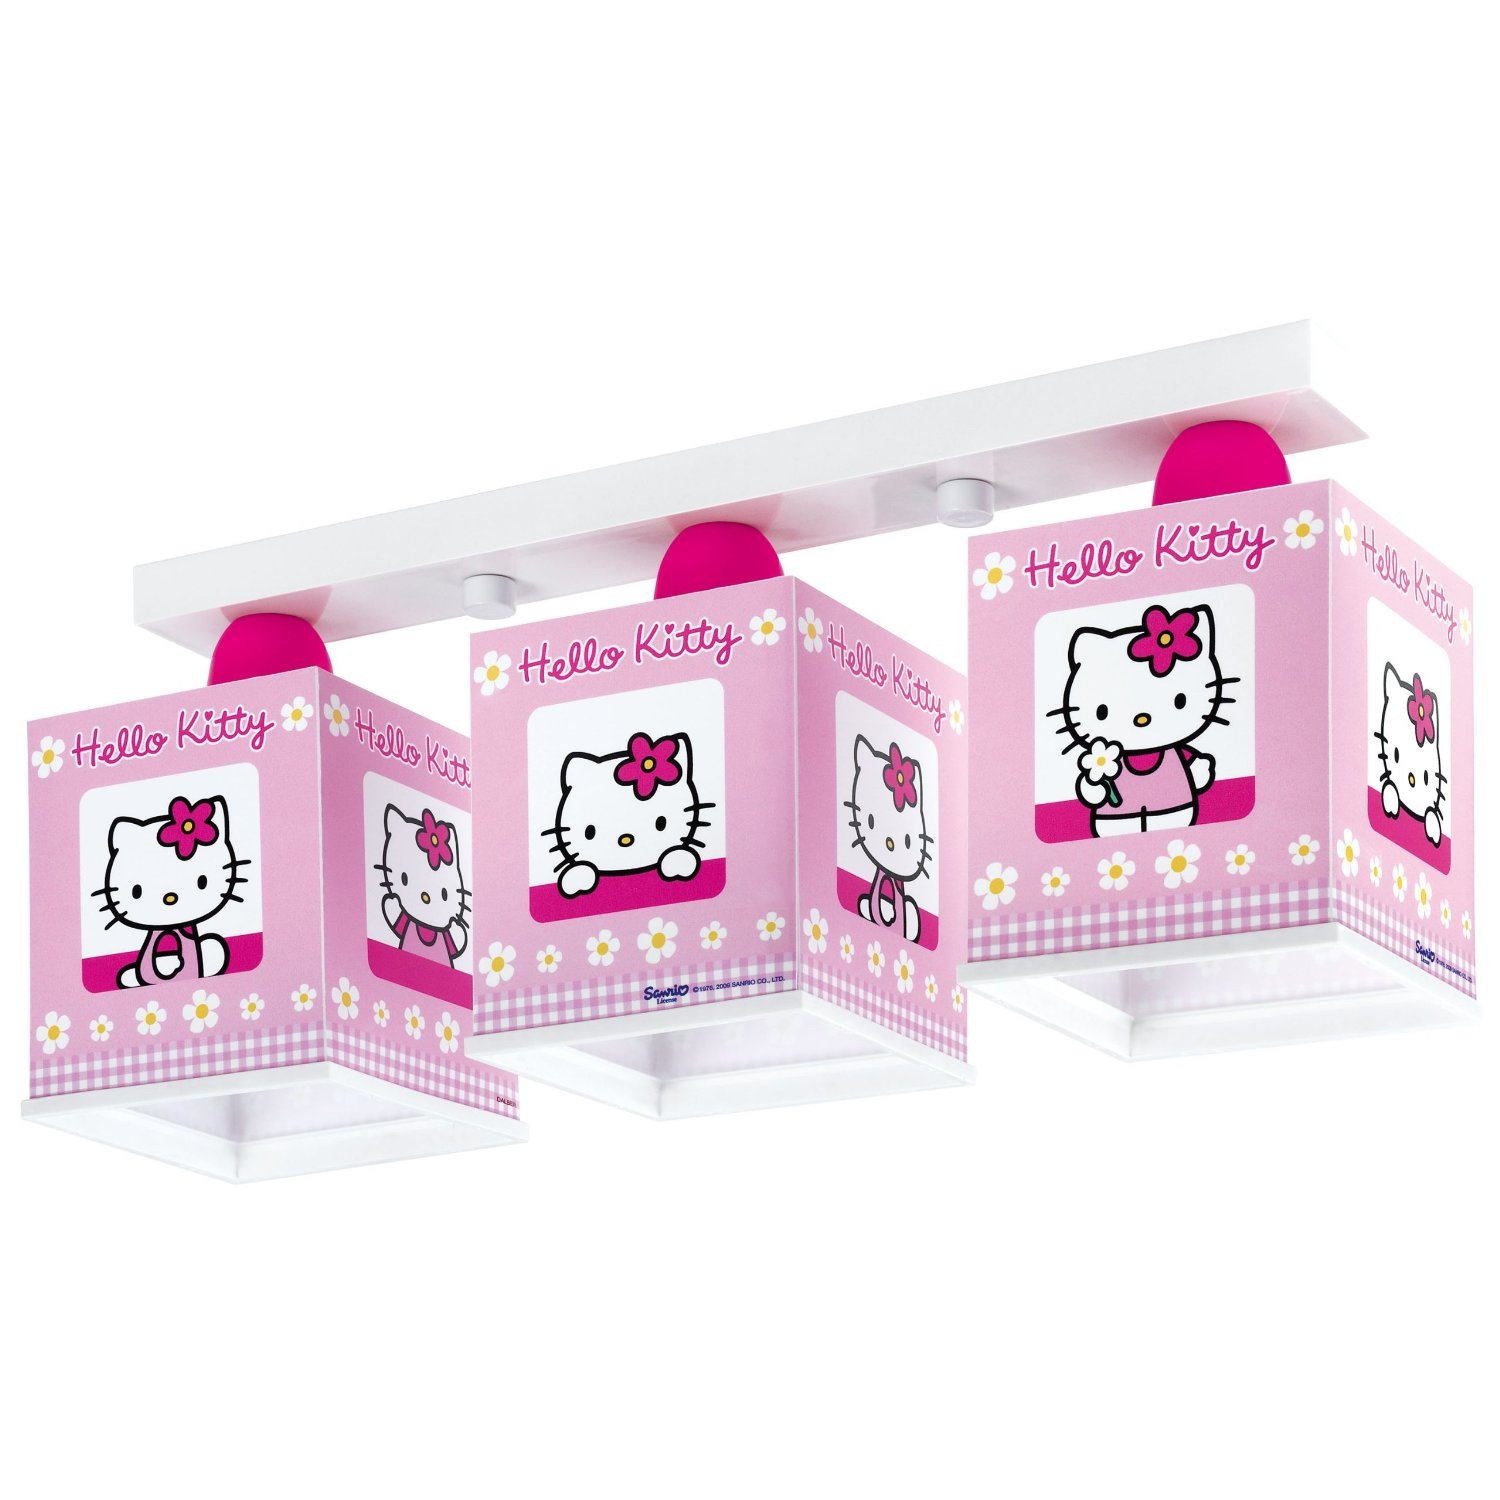 decken und wandleuchten dalber 63253 deckenlampe 3l hello kitty kinderzimmer lampe leuchte. Black Bedroom Furniture Sets. Home Design Ideas